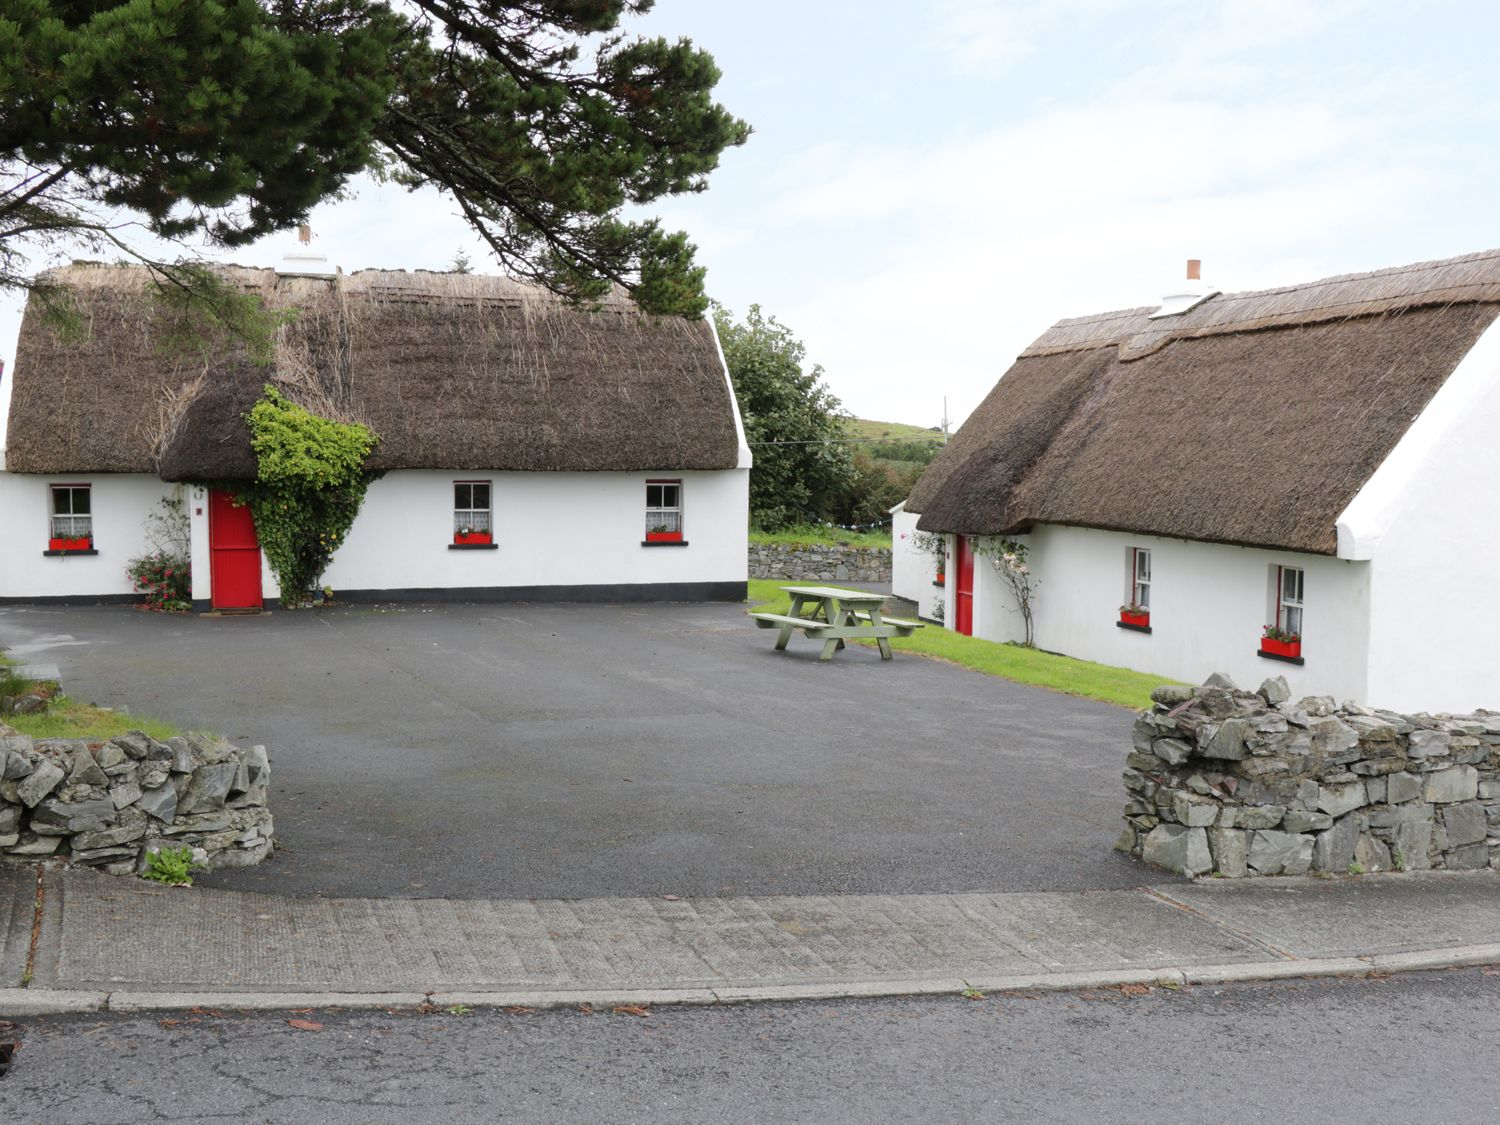 No 8 Renvyle Thatched Cottages - Shancroagh & County Galway - 986947 - photo 1